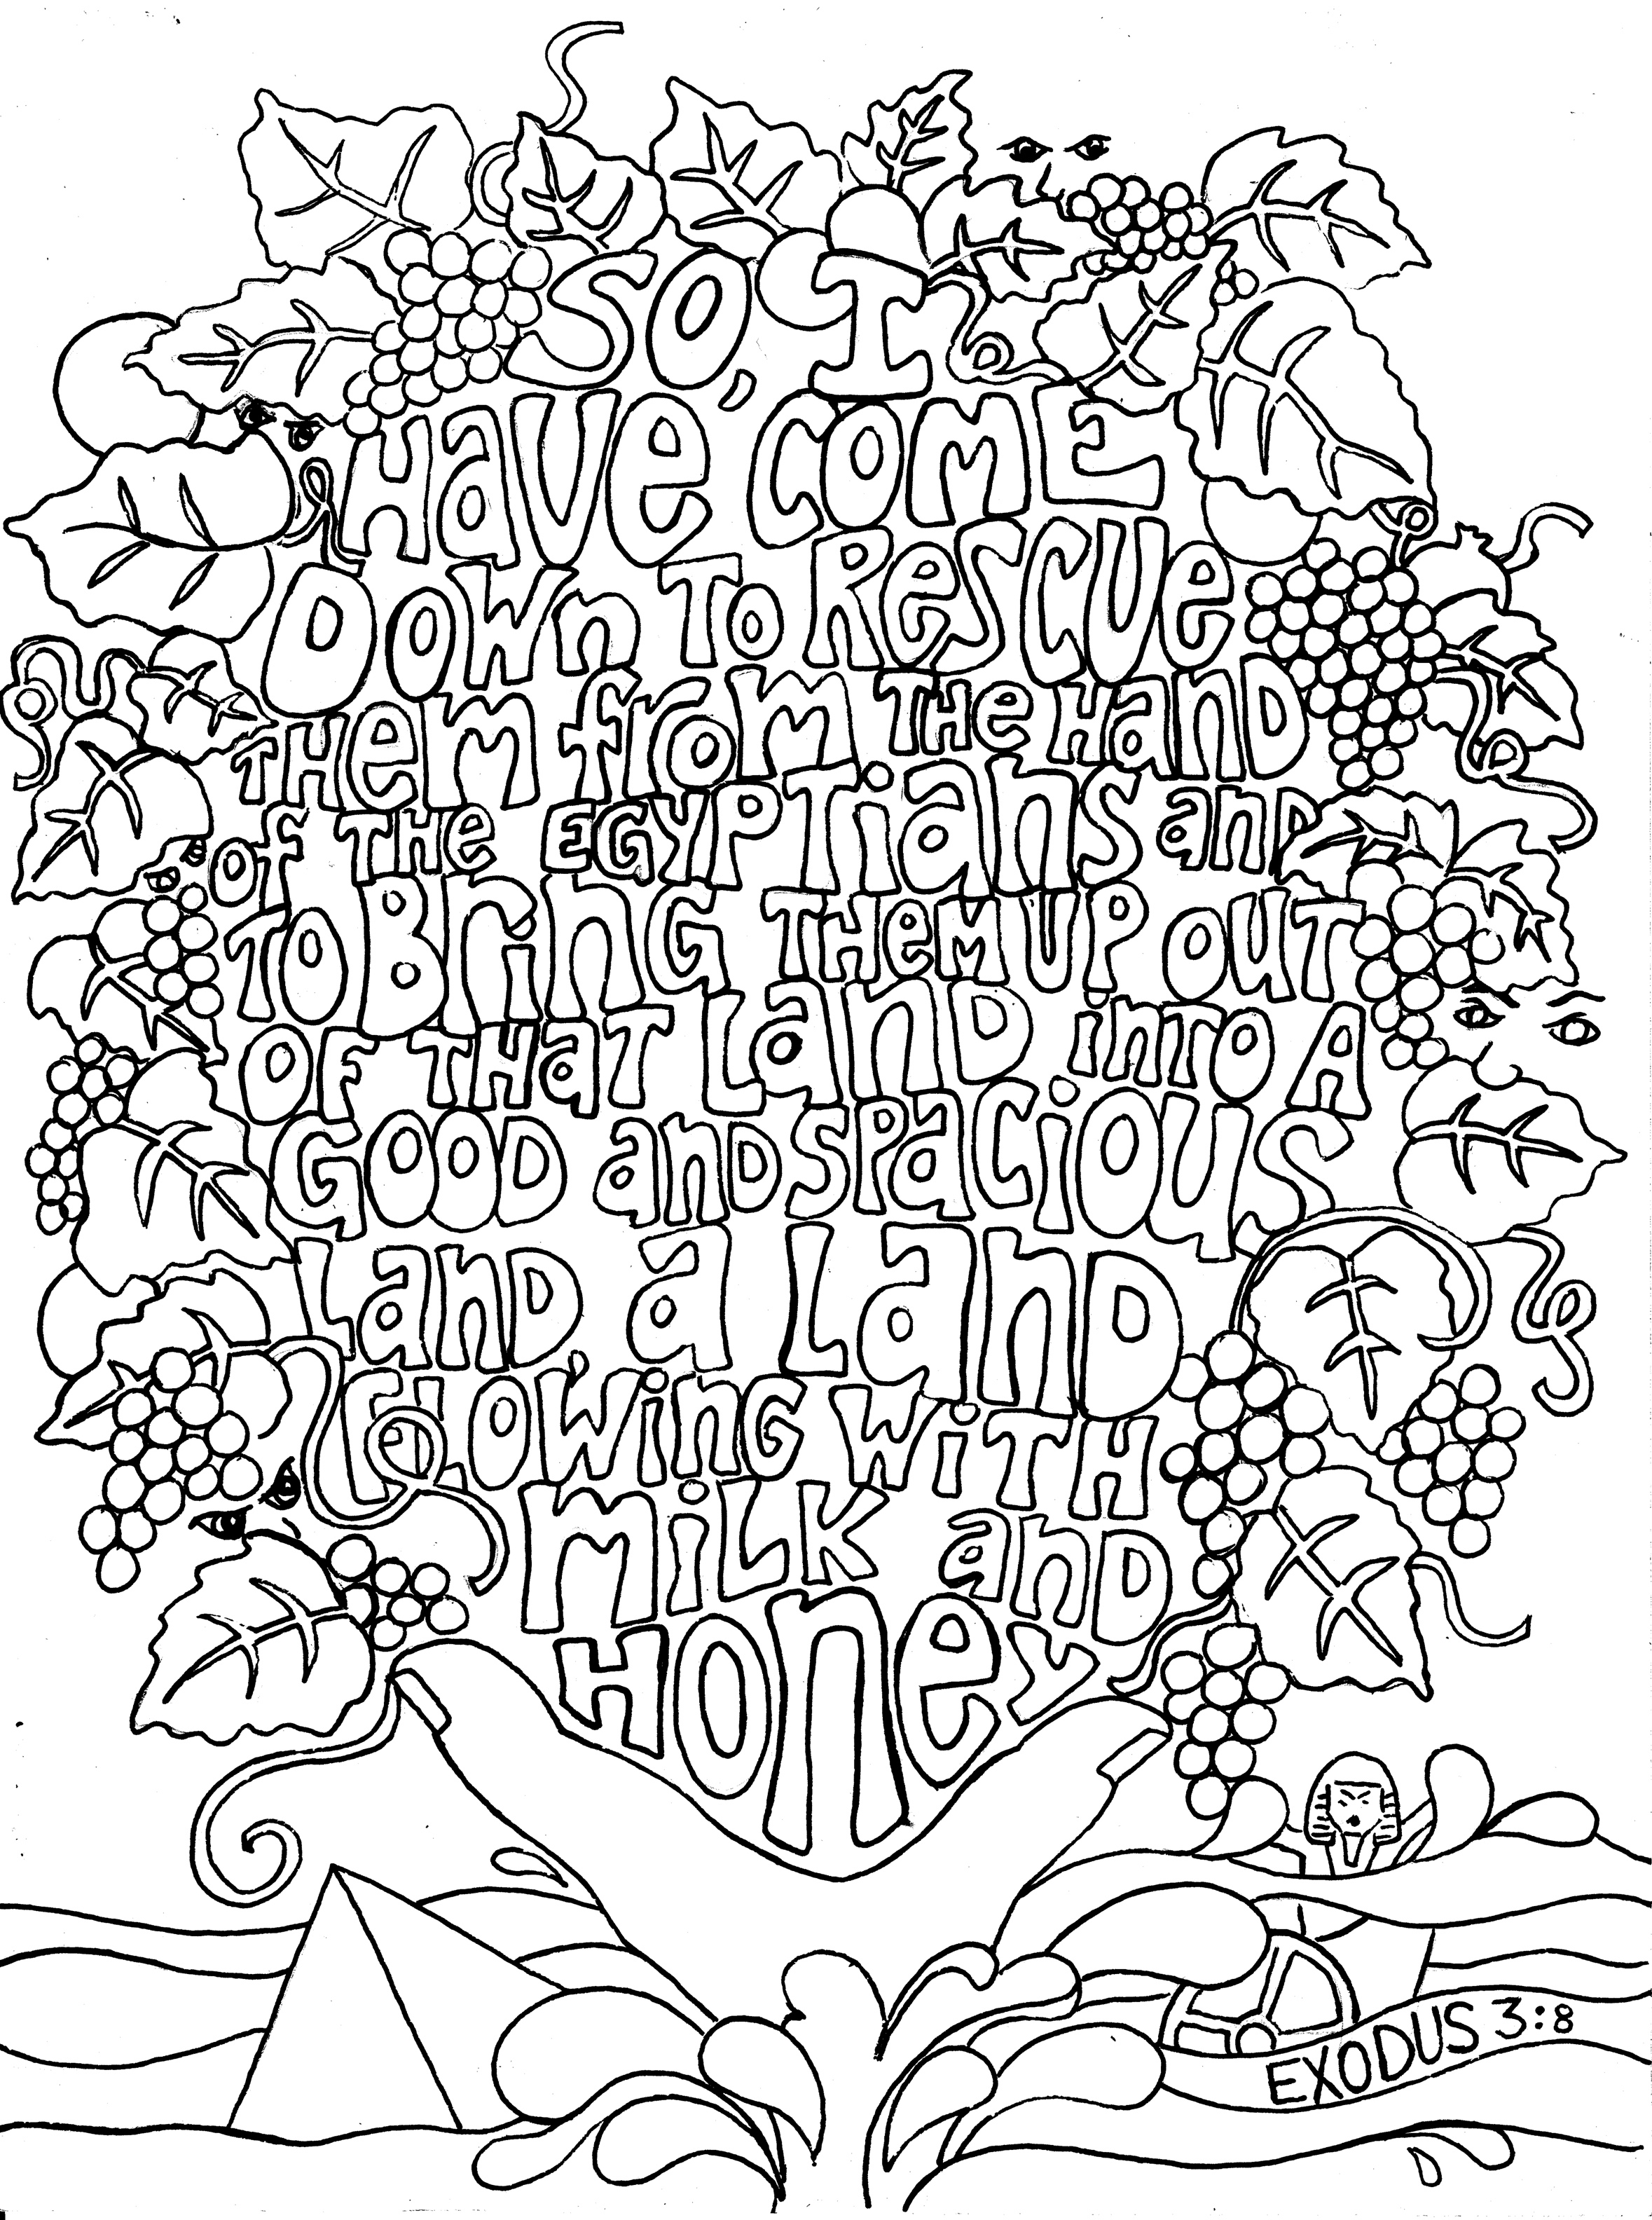 Sunday doodles exodus 3 8 from victory road Religious coloring books for adults